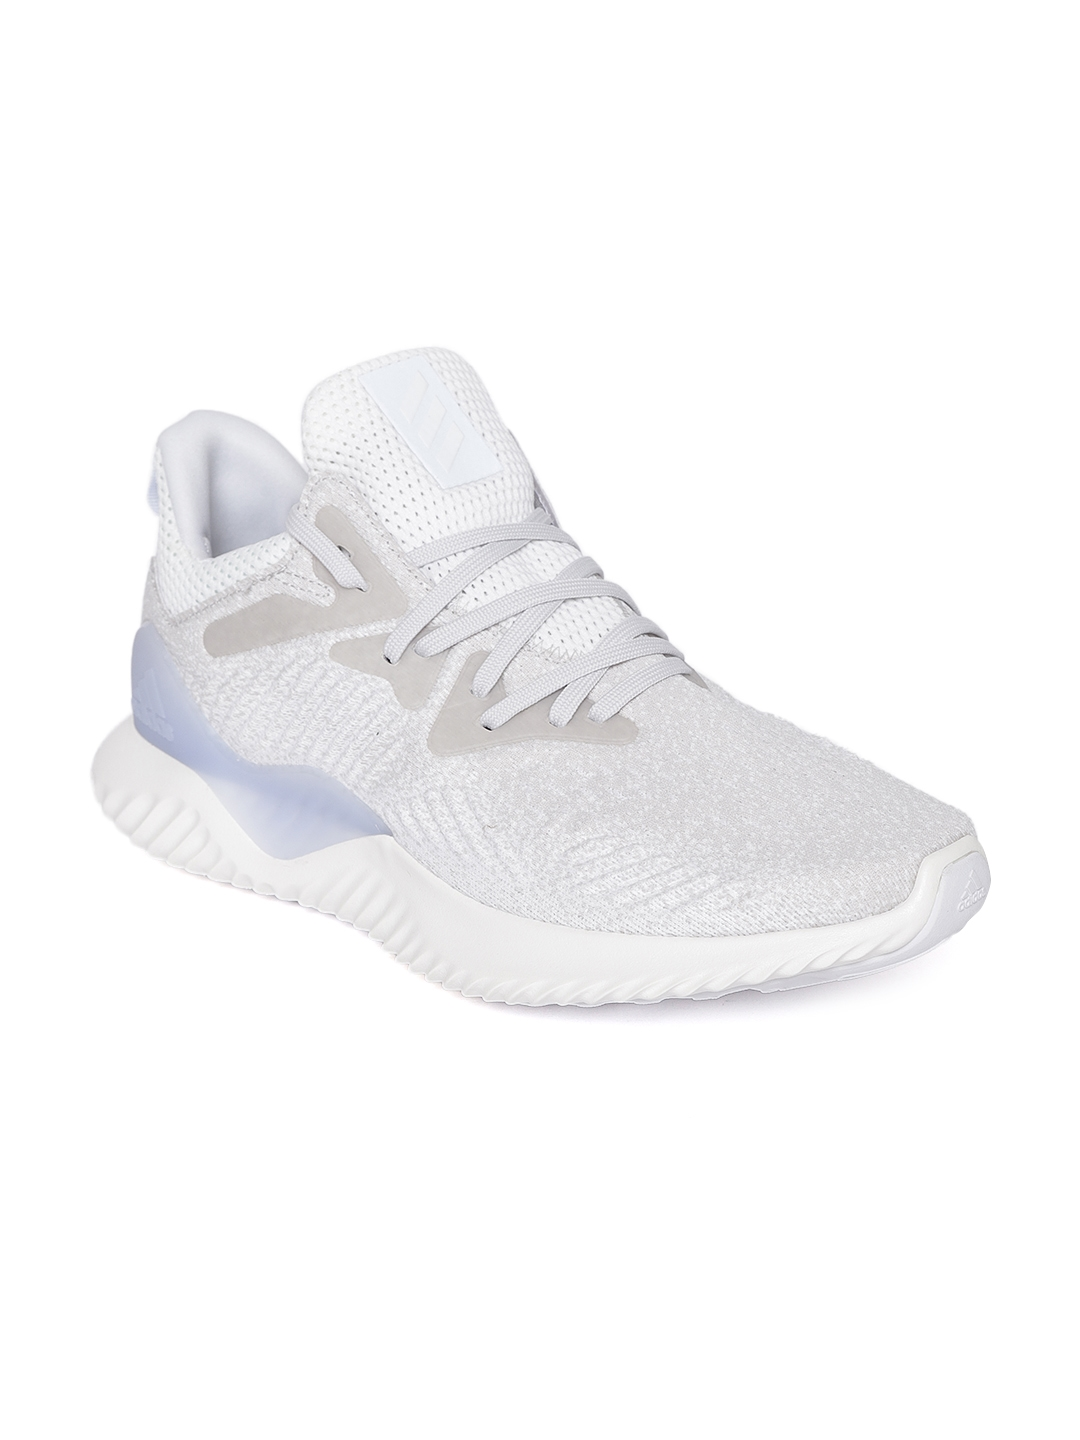 promo code 4b4d3 63464 ADIDAS Men Off-White  Grey Alphabounce Beyond M Running Shoes